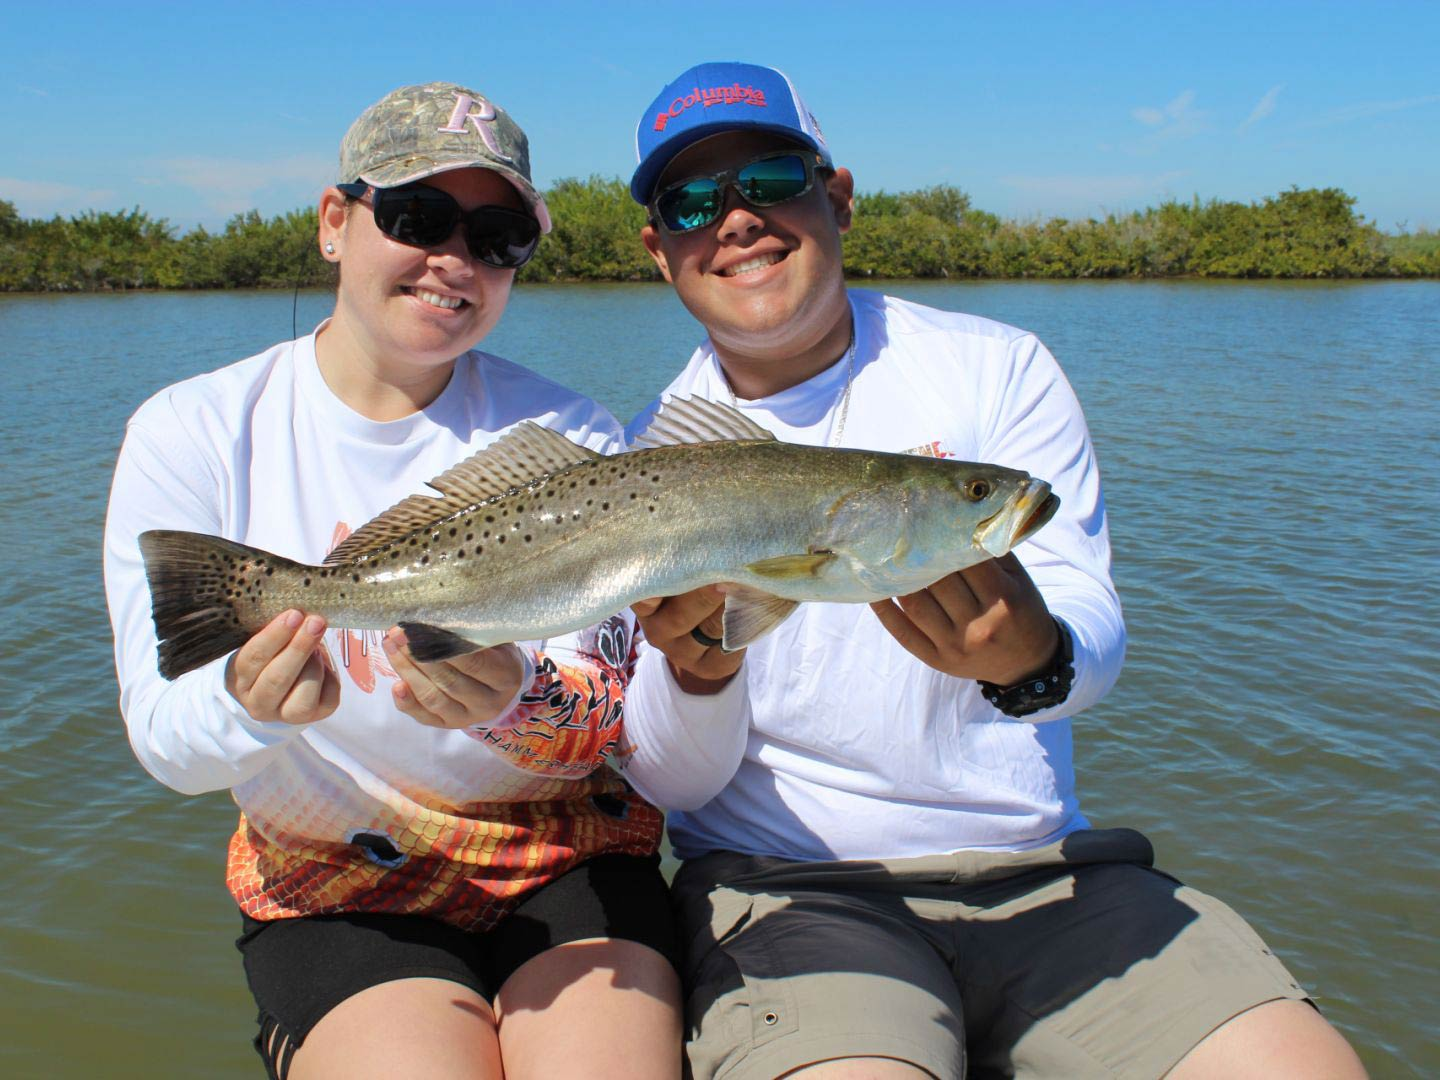 A smiling couple sit on board a vessel, holding a Speckled Trout with the Indian River in the background